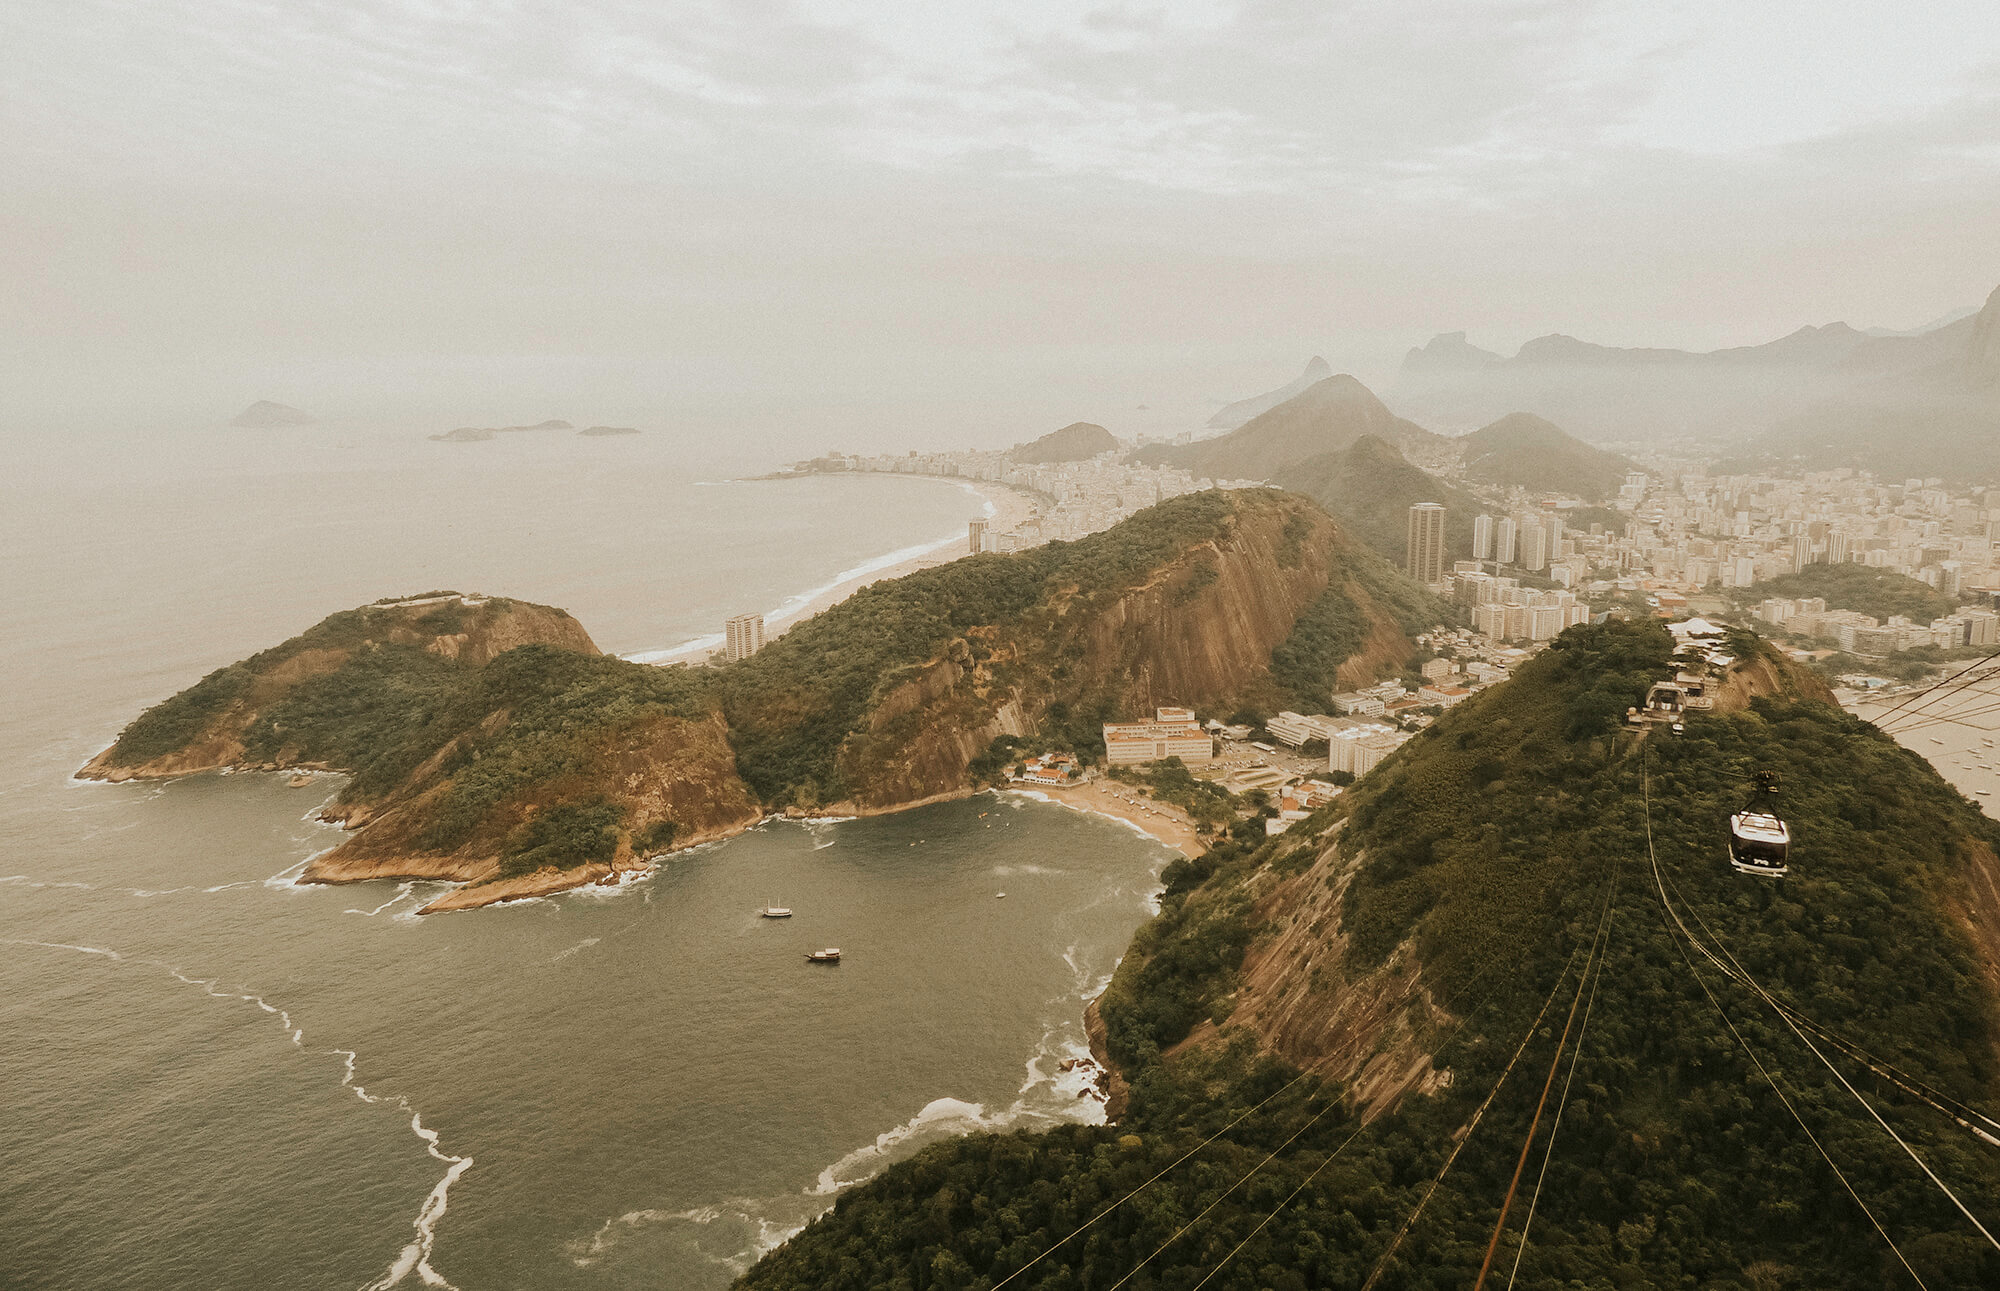 Taking in the views over Rio de Janeiro, an epic start of our 3 week trip through Brazil.